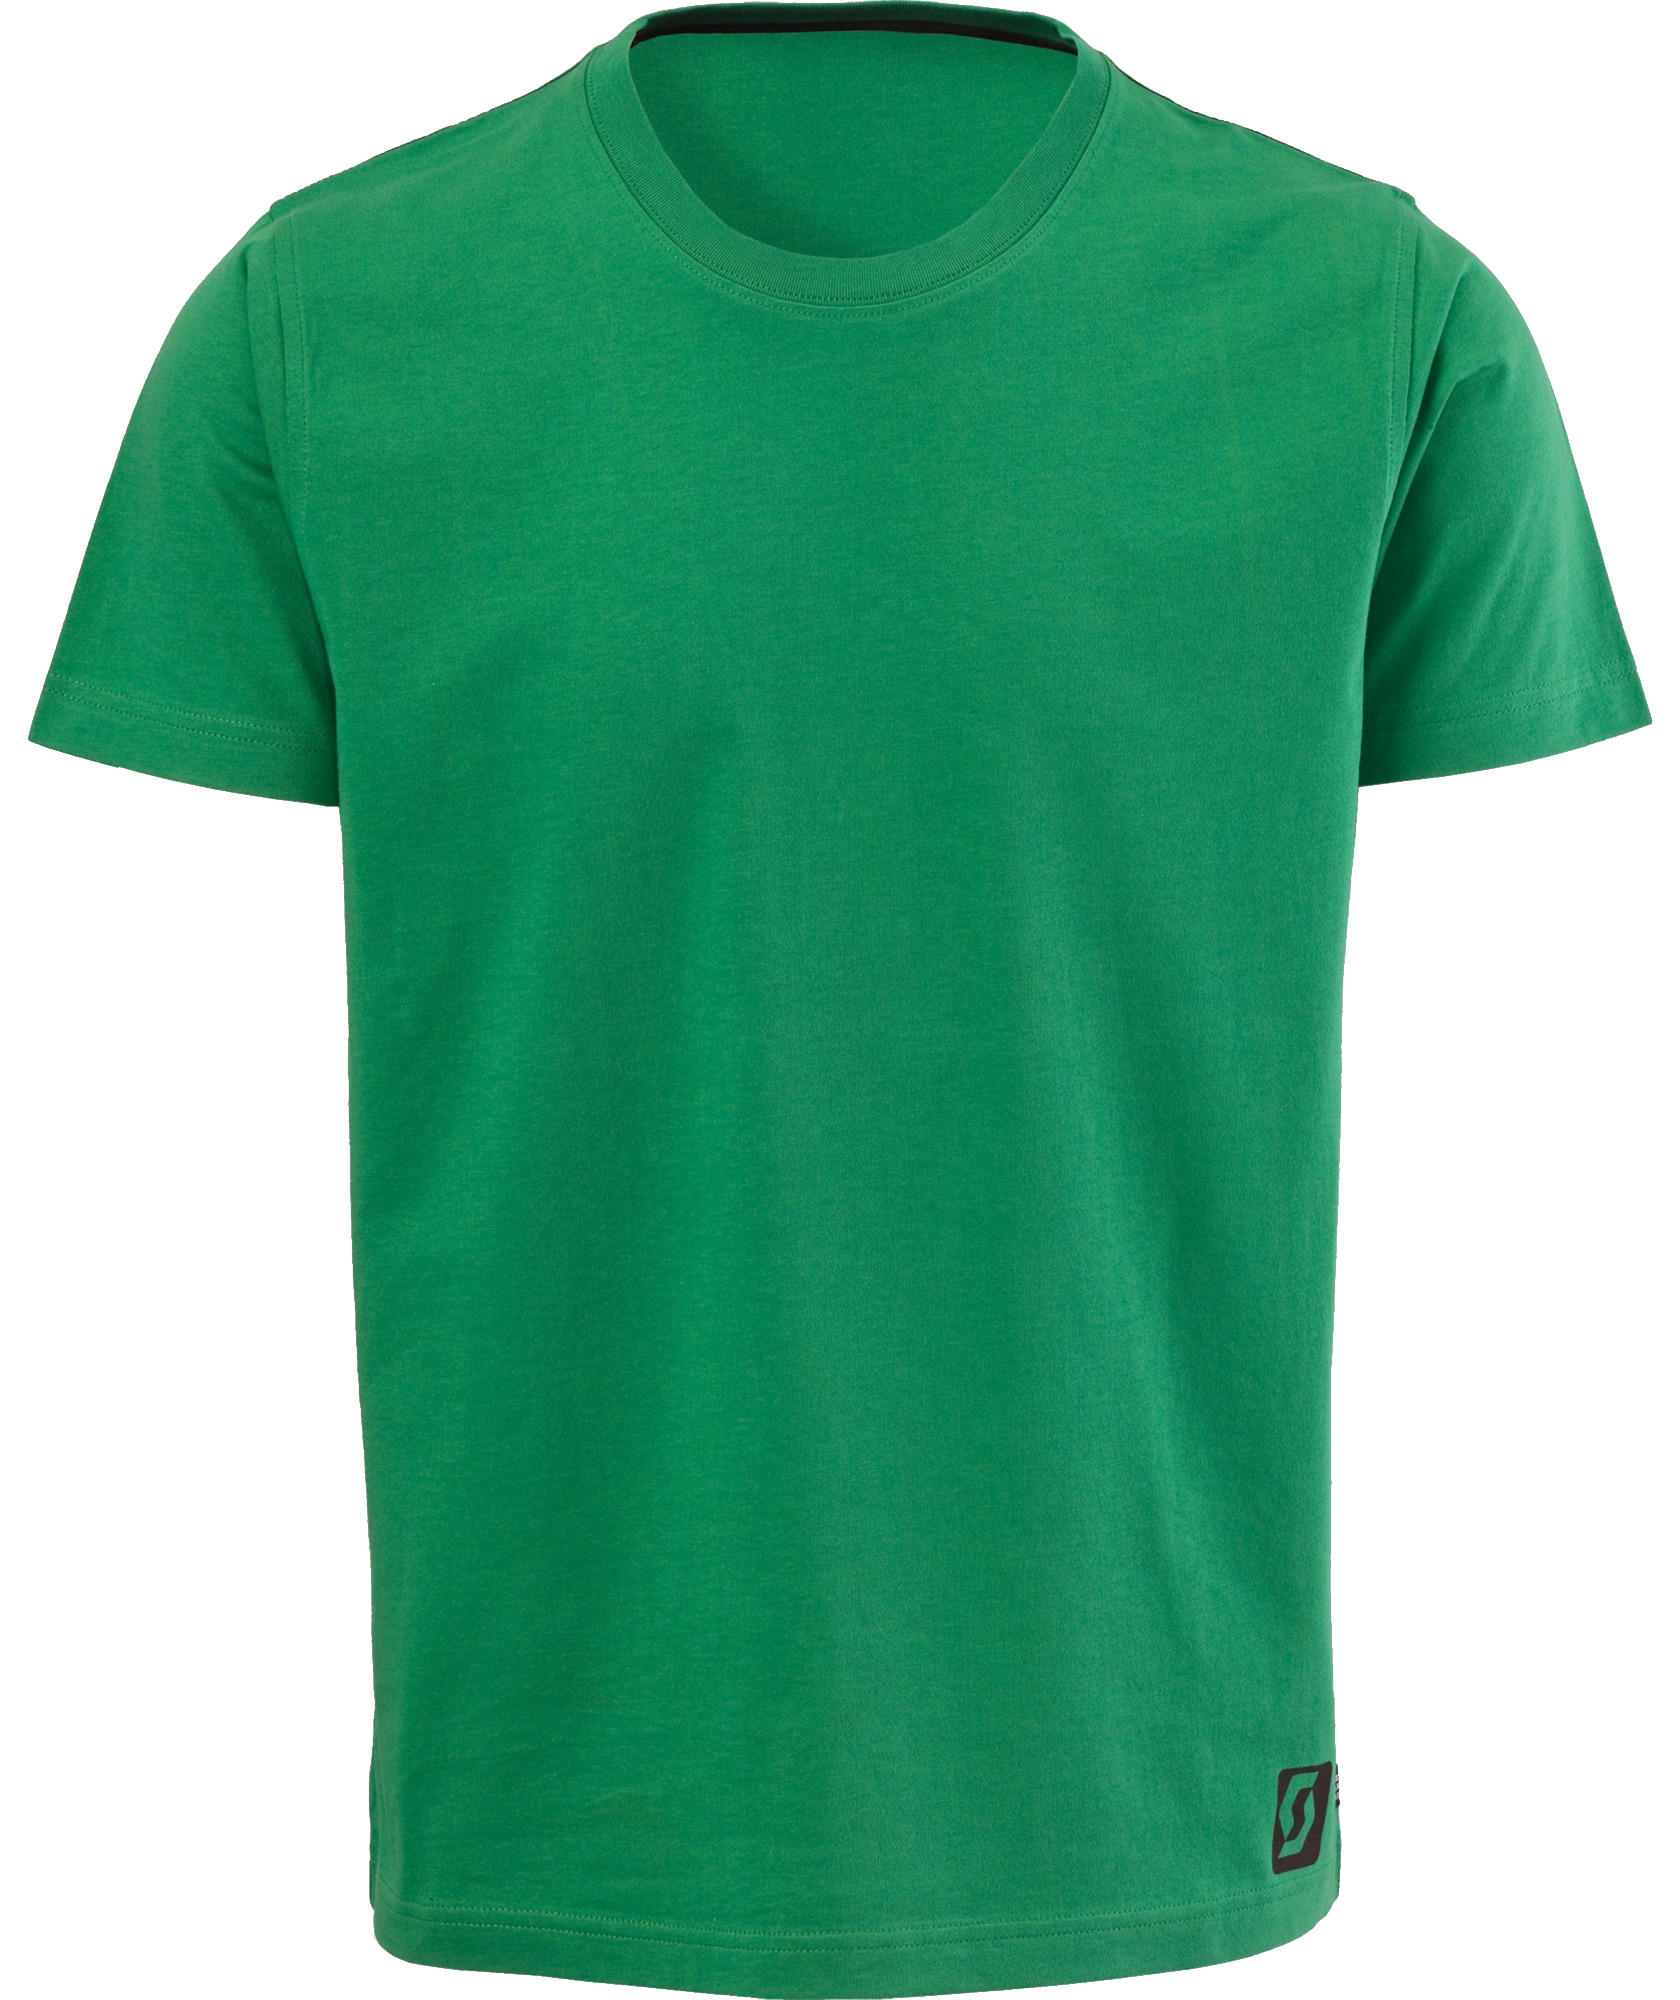 polo t shirt png